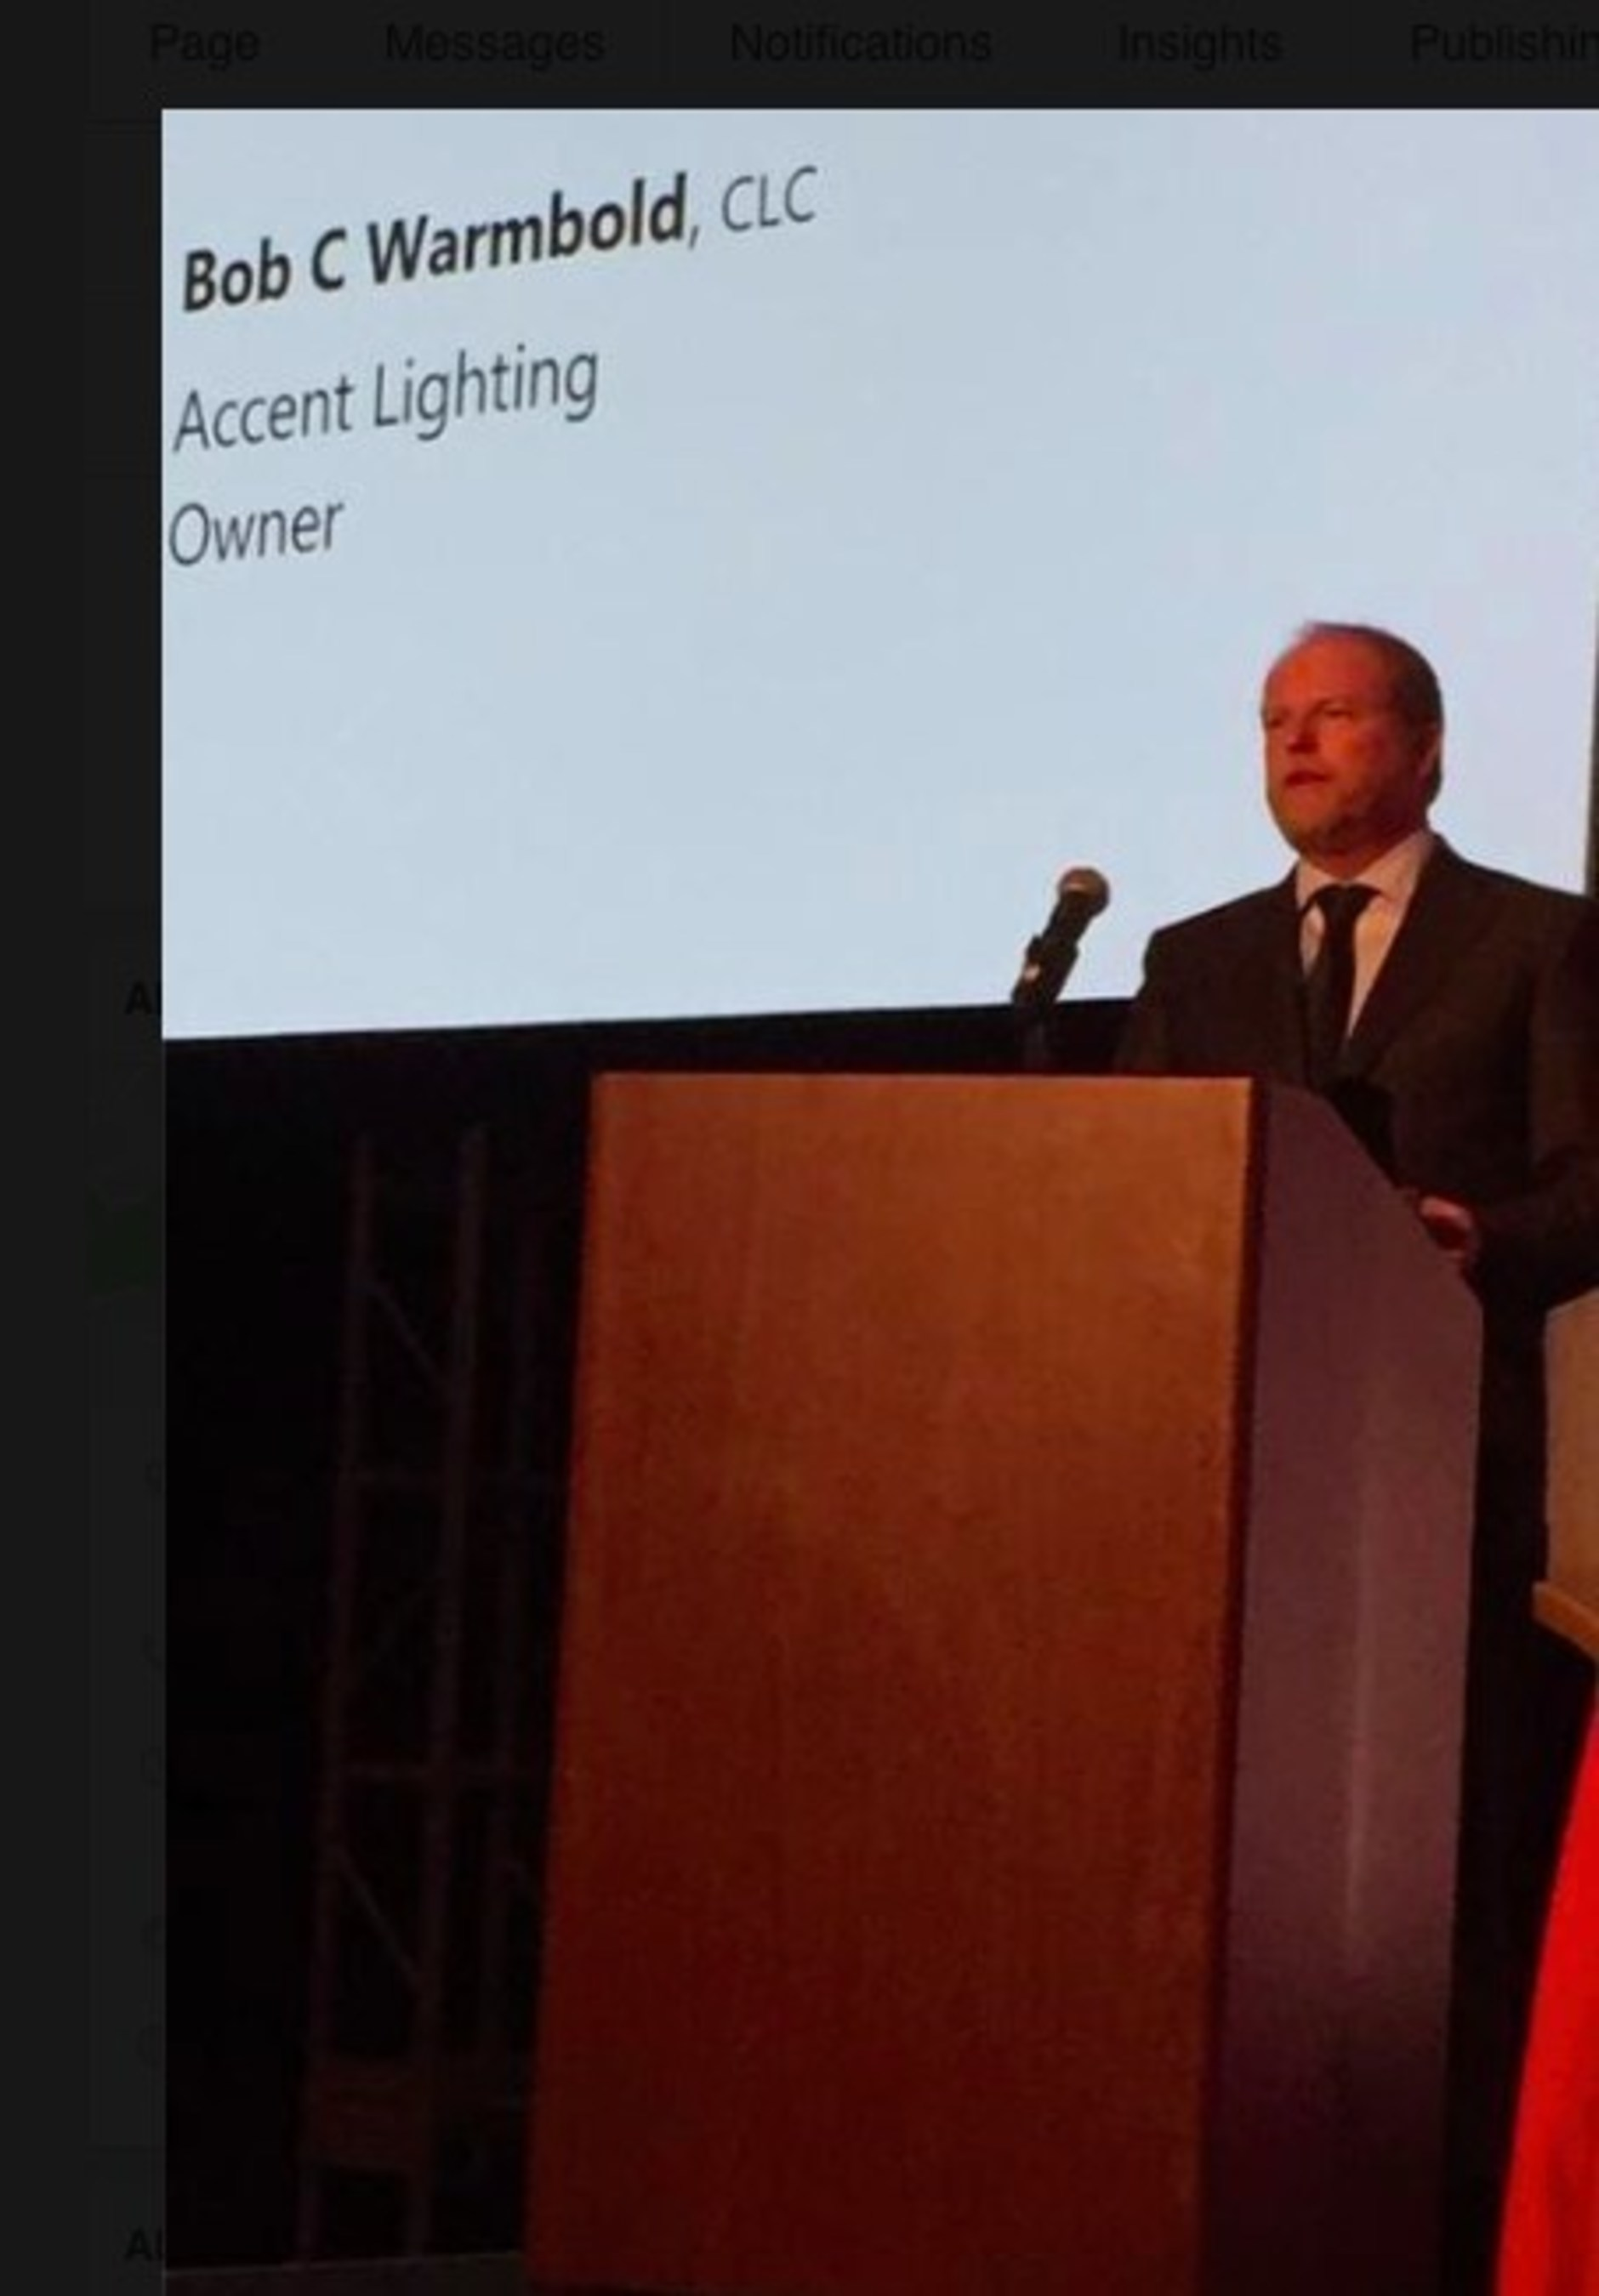 Accent Lighting Announces New Central